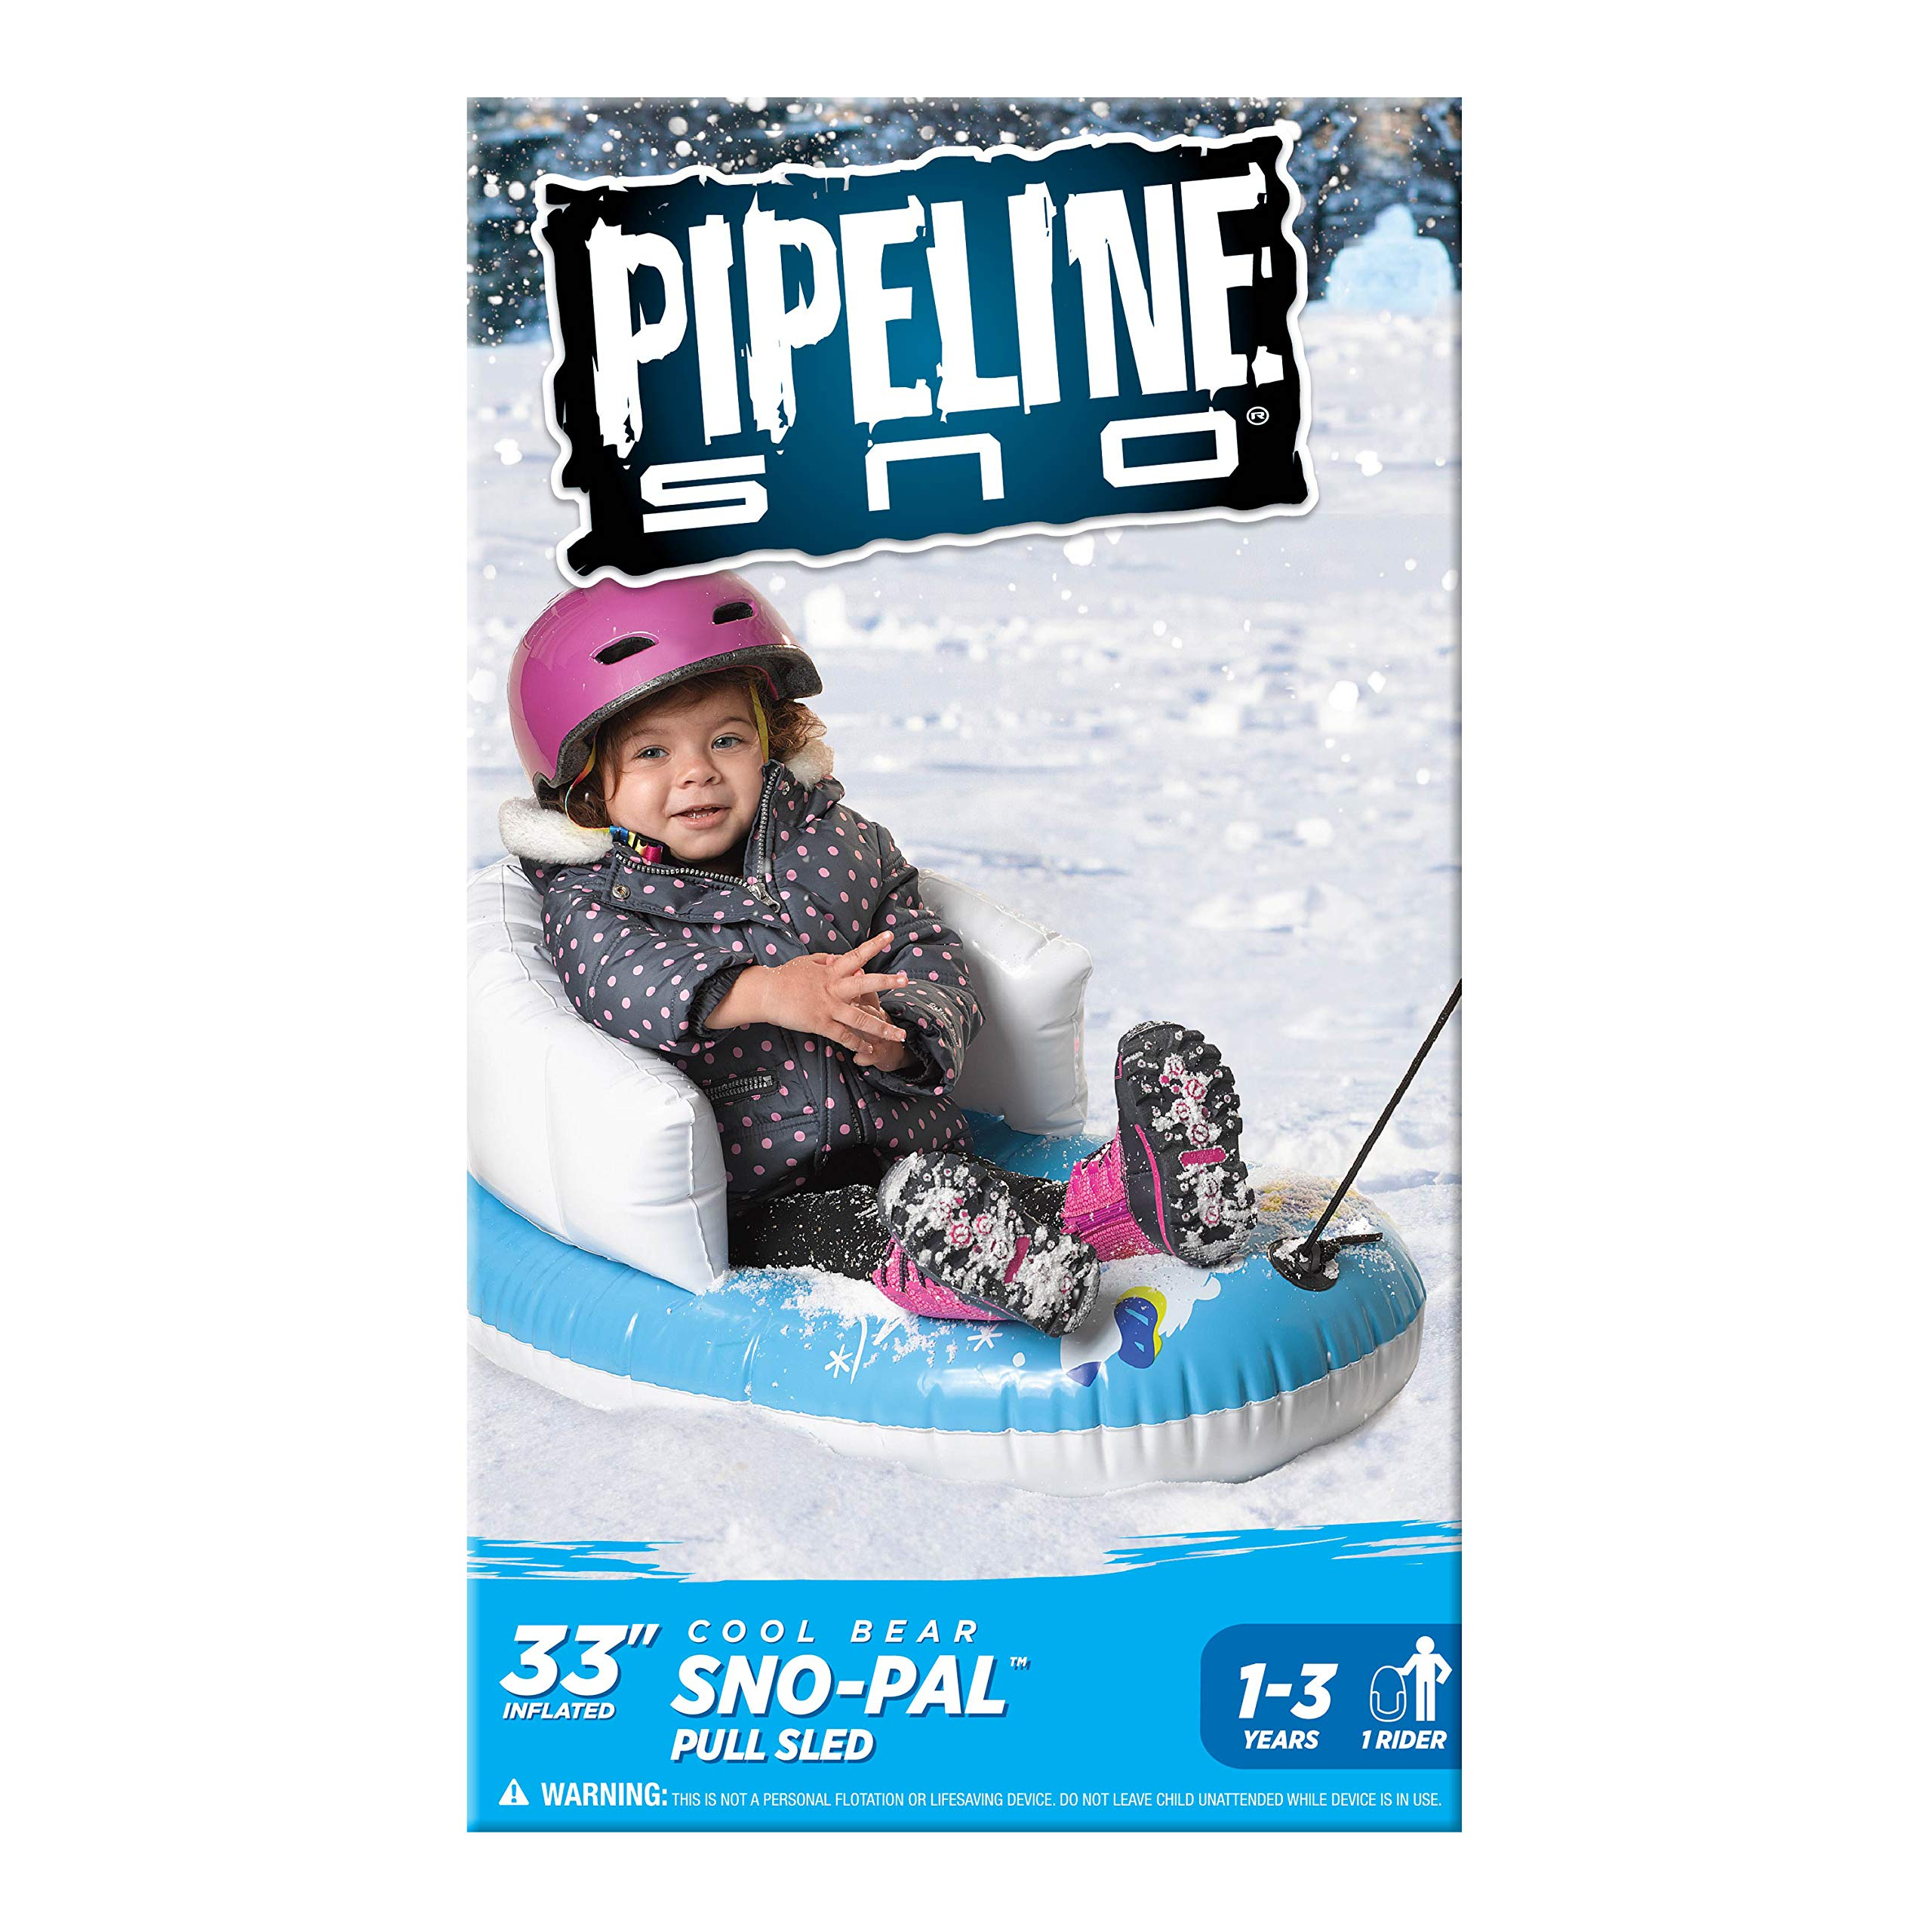 """Pipeline Sno Polar Bear Snow-Pal Inflatable Kids Snow Tube with High Back Seat and Repair Kit, 33"""" Inches Long by Pipeline Sno (Image #4)"""